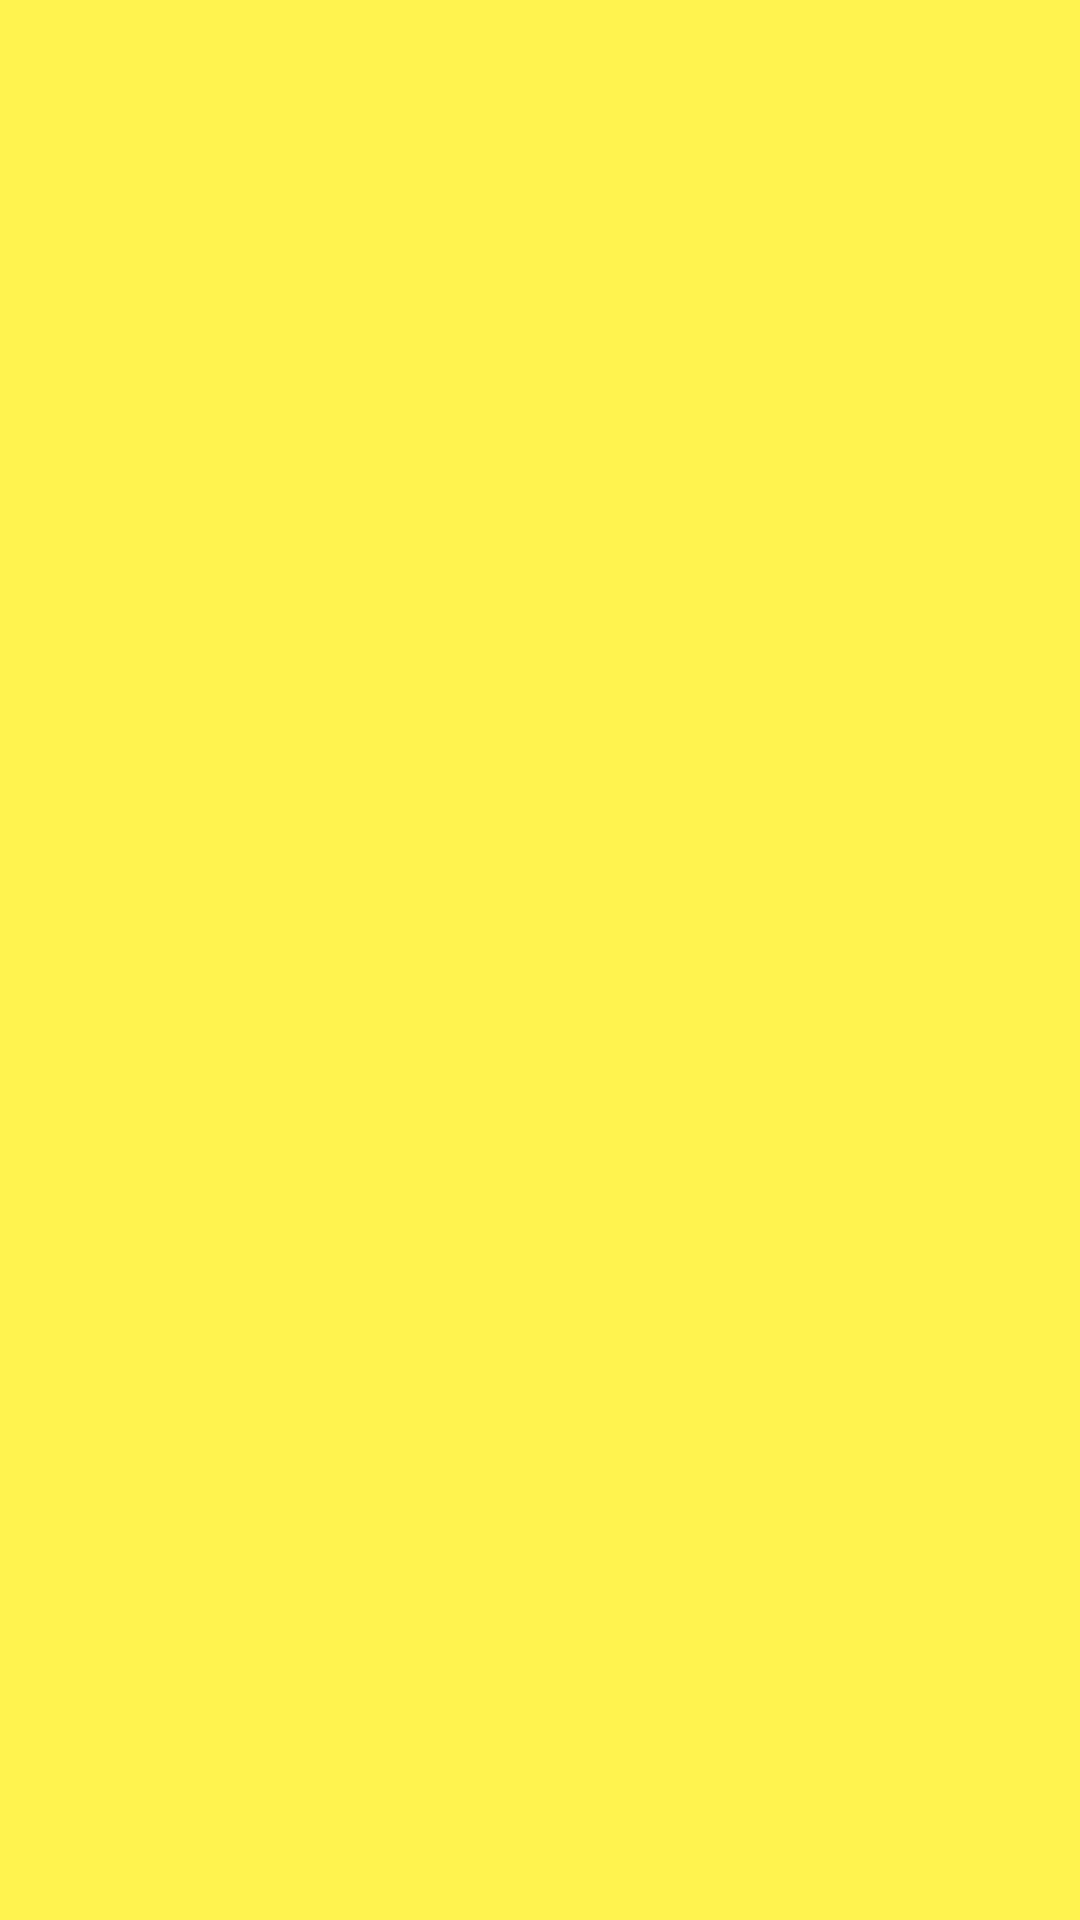 1080x1920 Lemon Yellow Solid Color Background